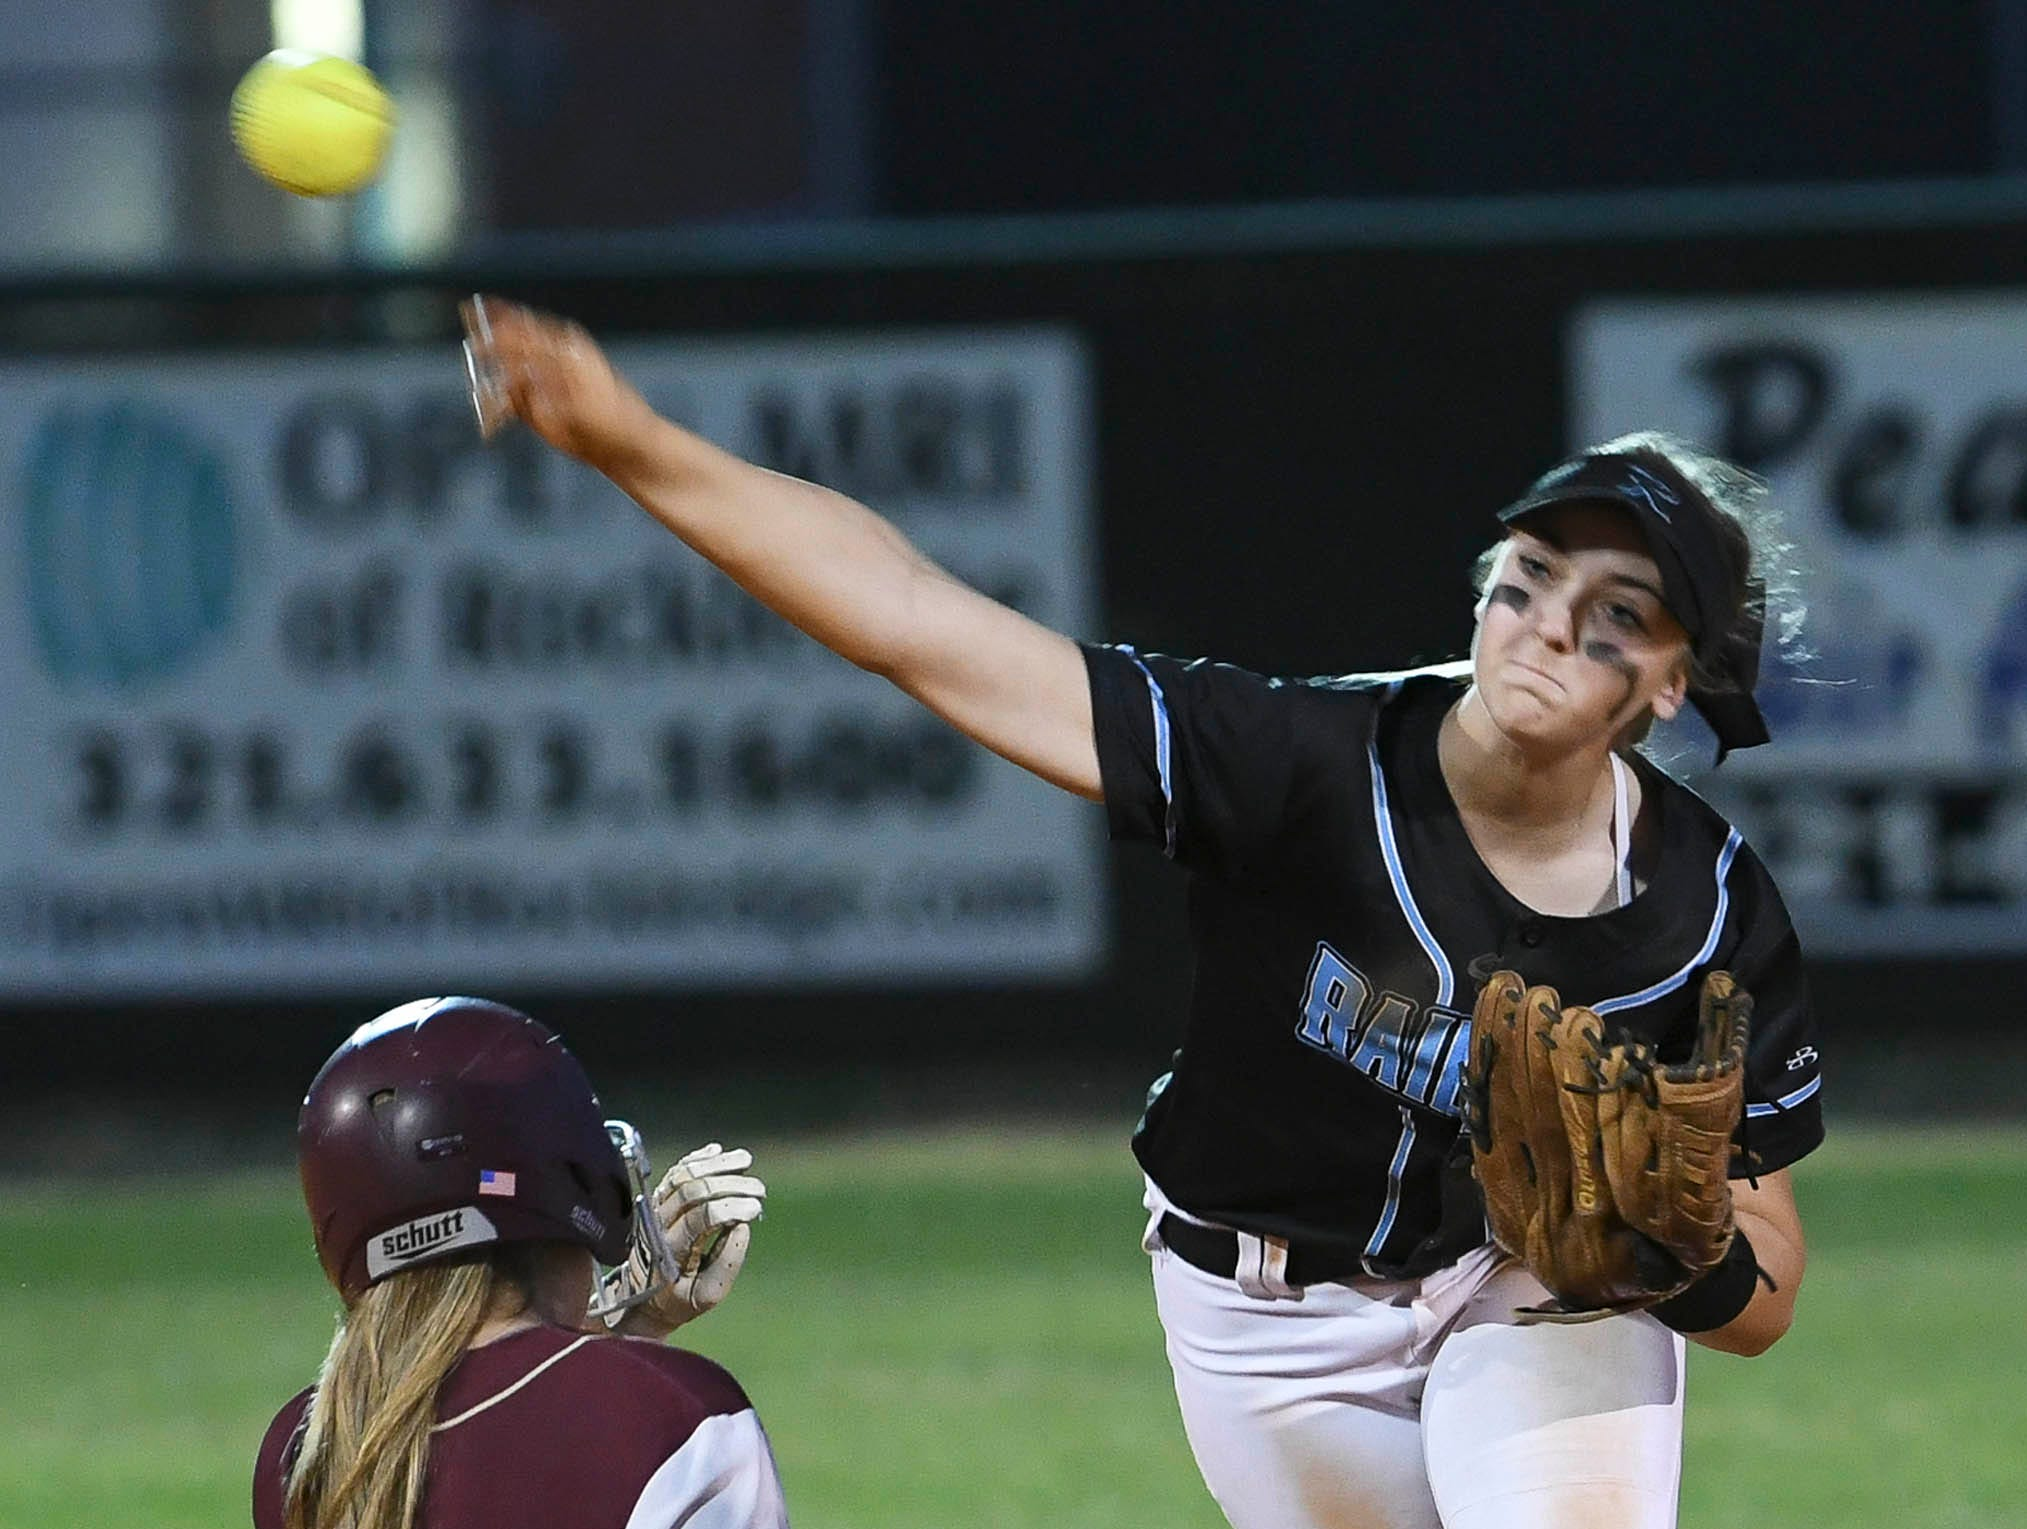 Emily Thomas of Rockledge turns a double play during Wednesday's game against Astronaut.